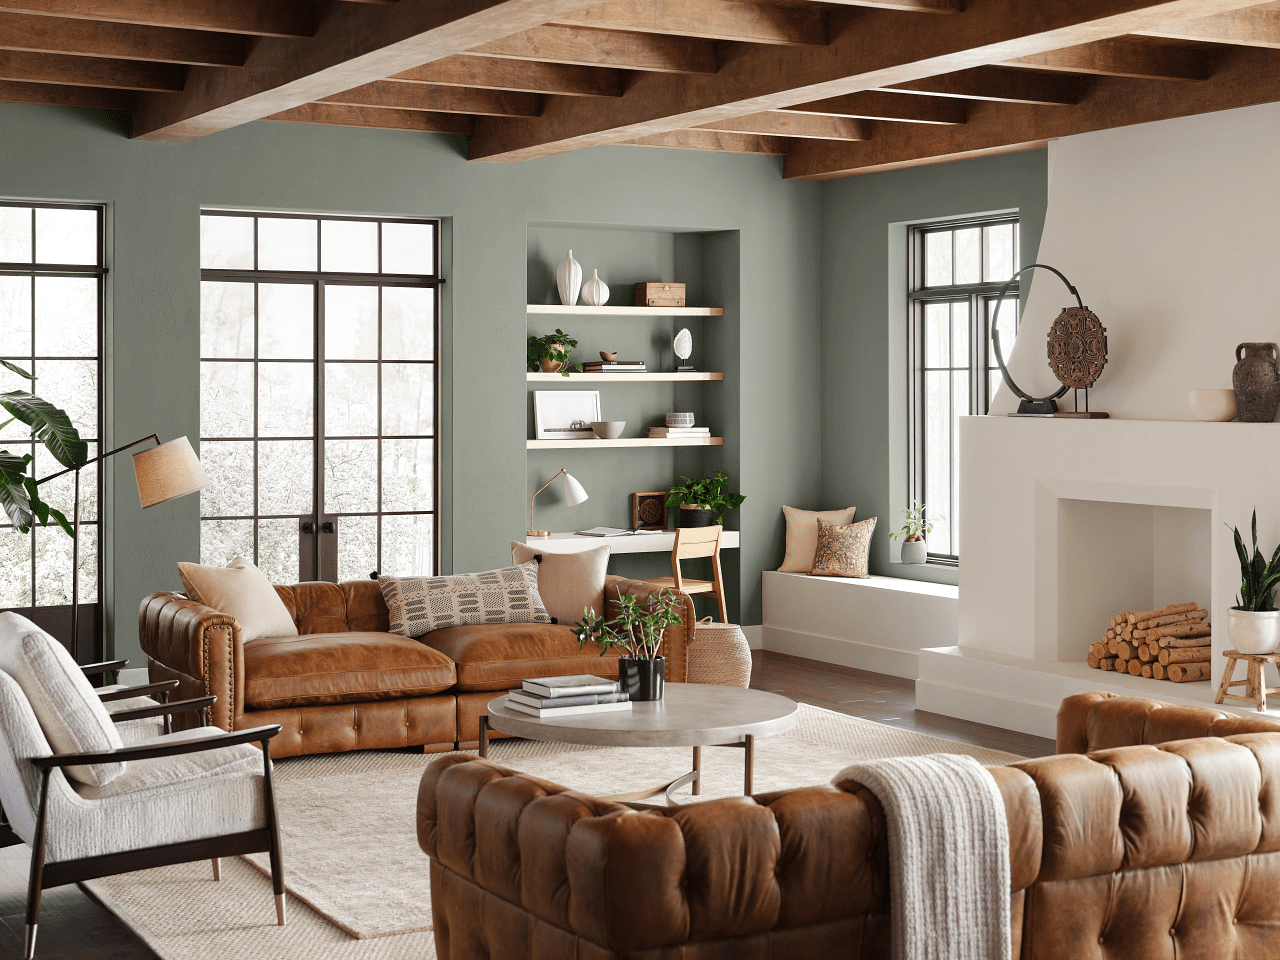 Sherwin-Williams Color of the Year 2022 Evergreen Fog in living room